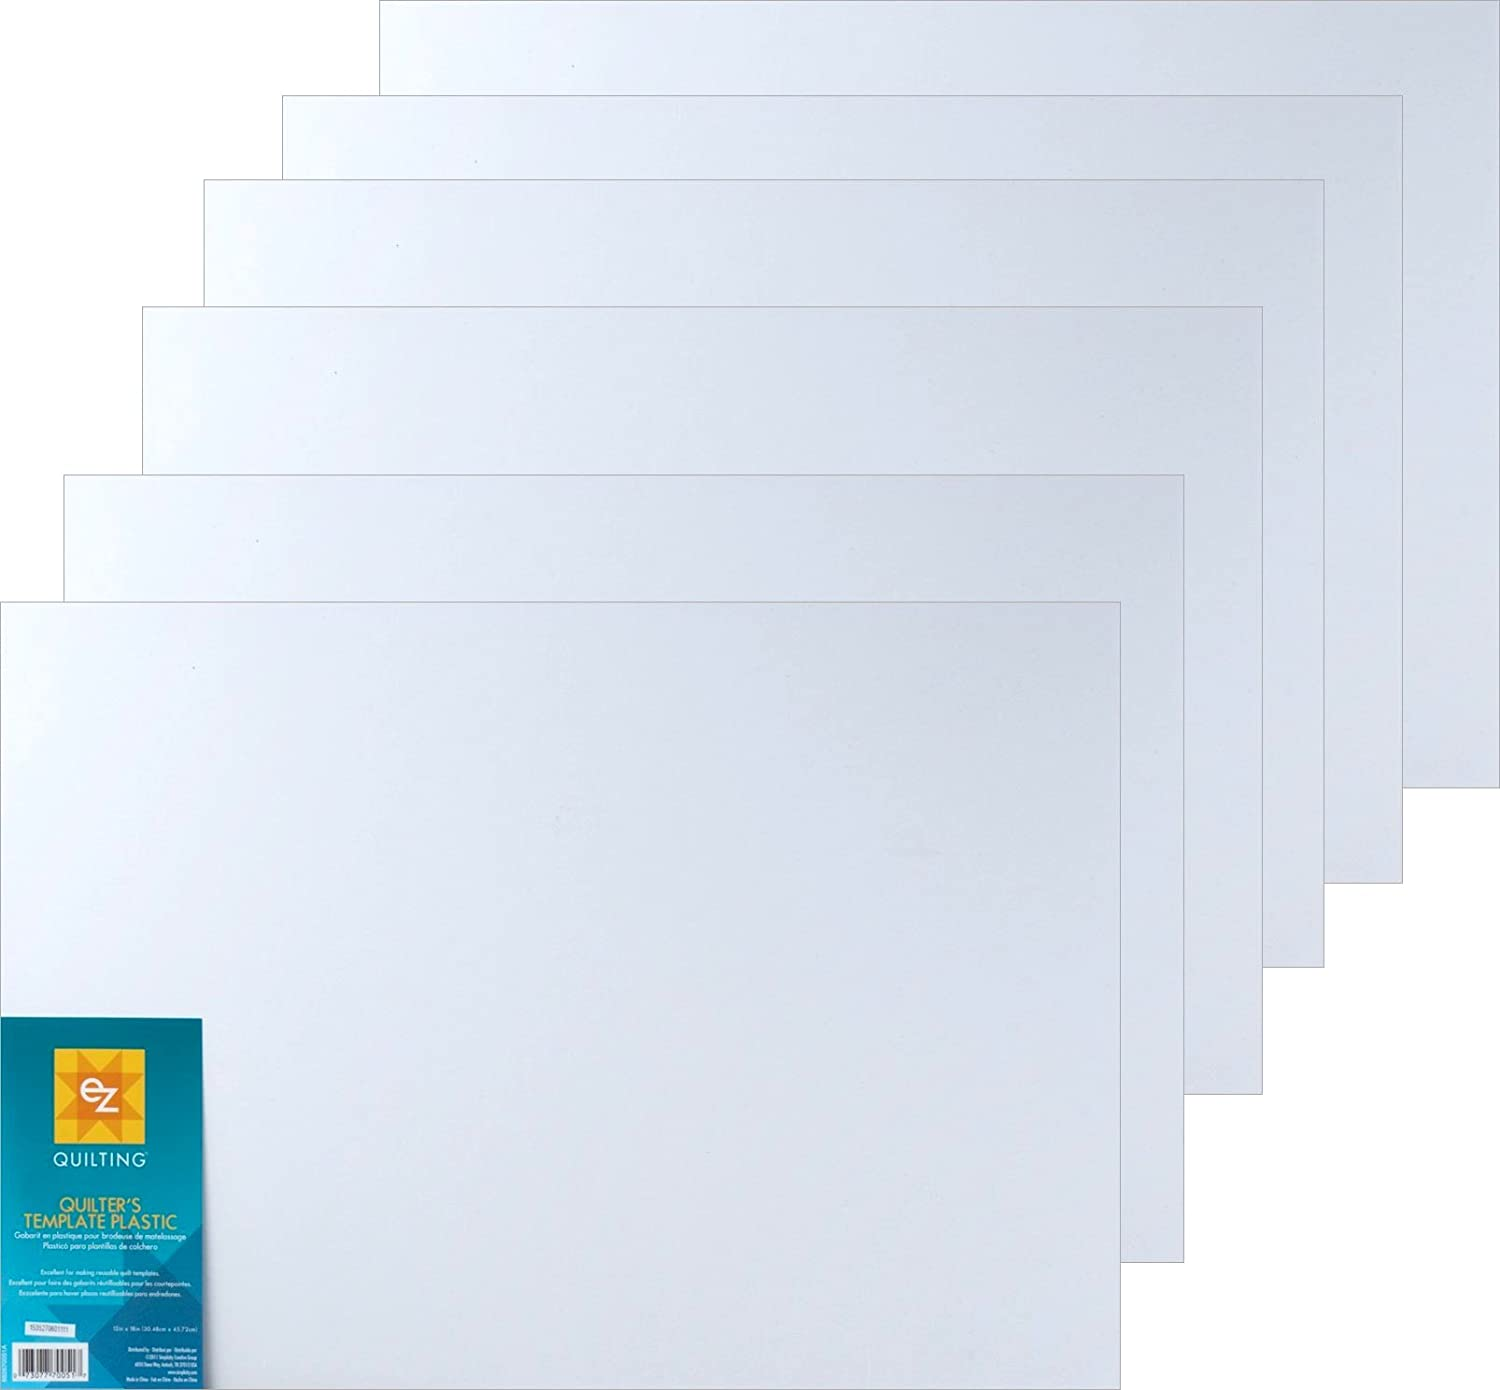 Bundle of EZ International Quilting by Wrights Blank Plastic Template Sheets, 12in x 18in (6 Sheets) 4336997351